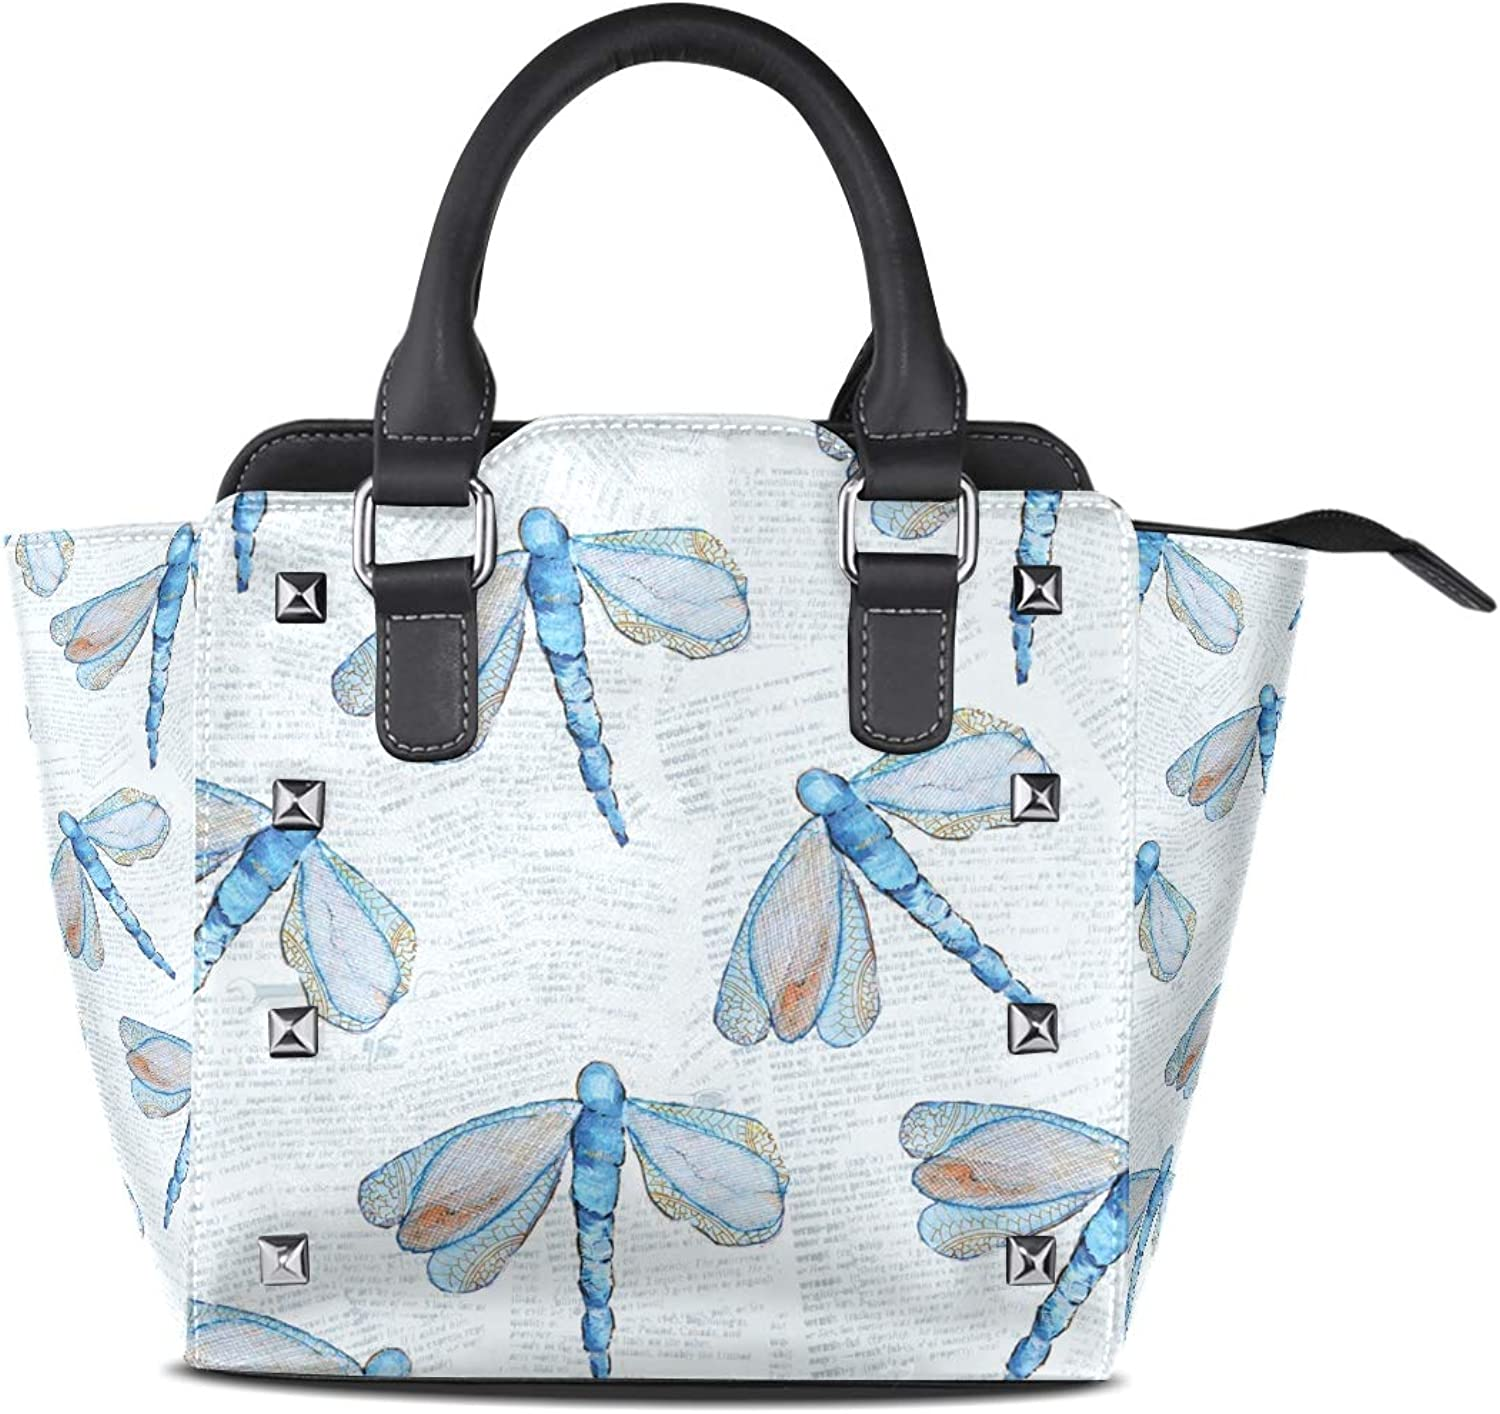 Women's Handbags Dragonfly Pattern Tote